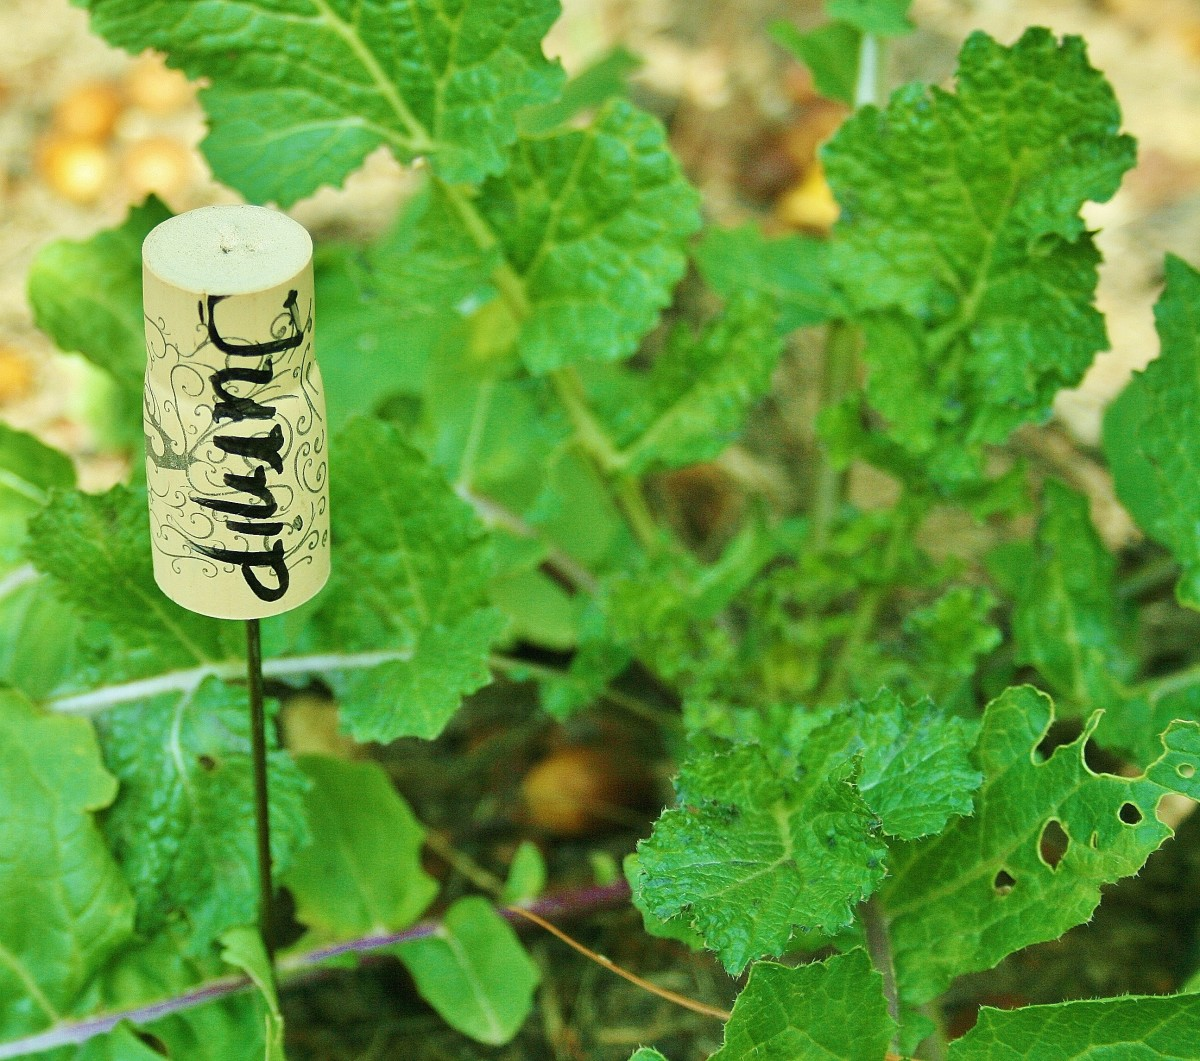 Insert a chopstick or a piece of wire coat hanger into the cork to make a plant marker.